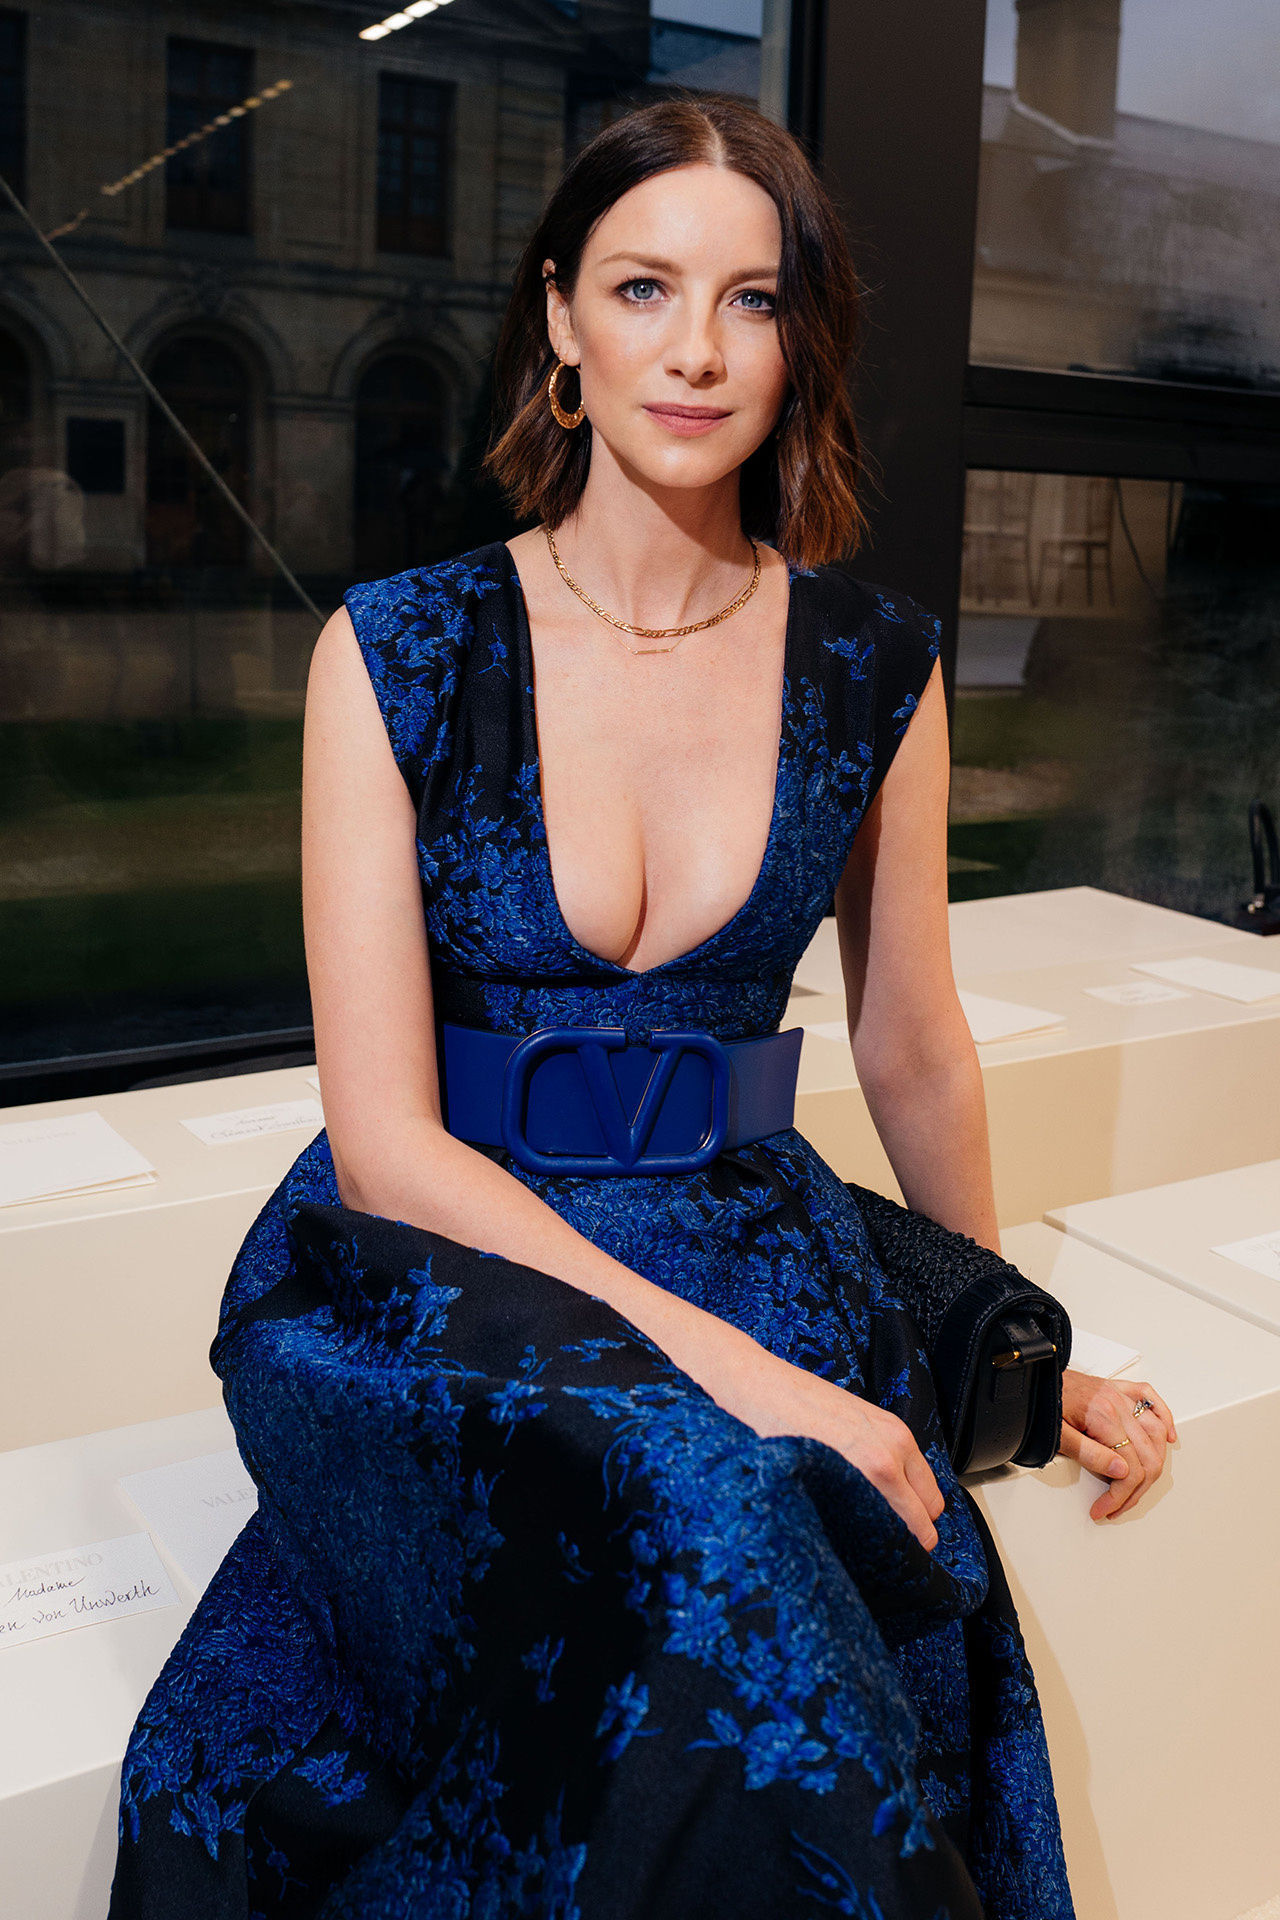 celebrities_papfw20_0011_caitriona_balfe.jpg